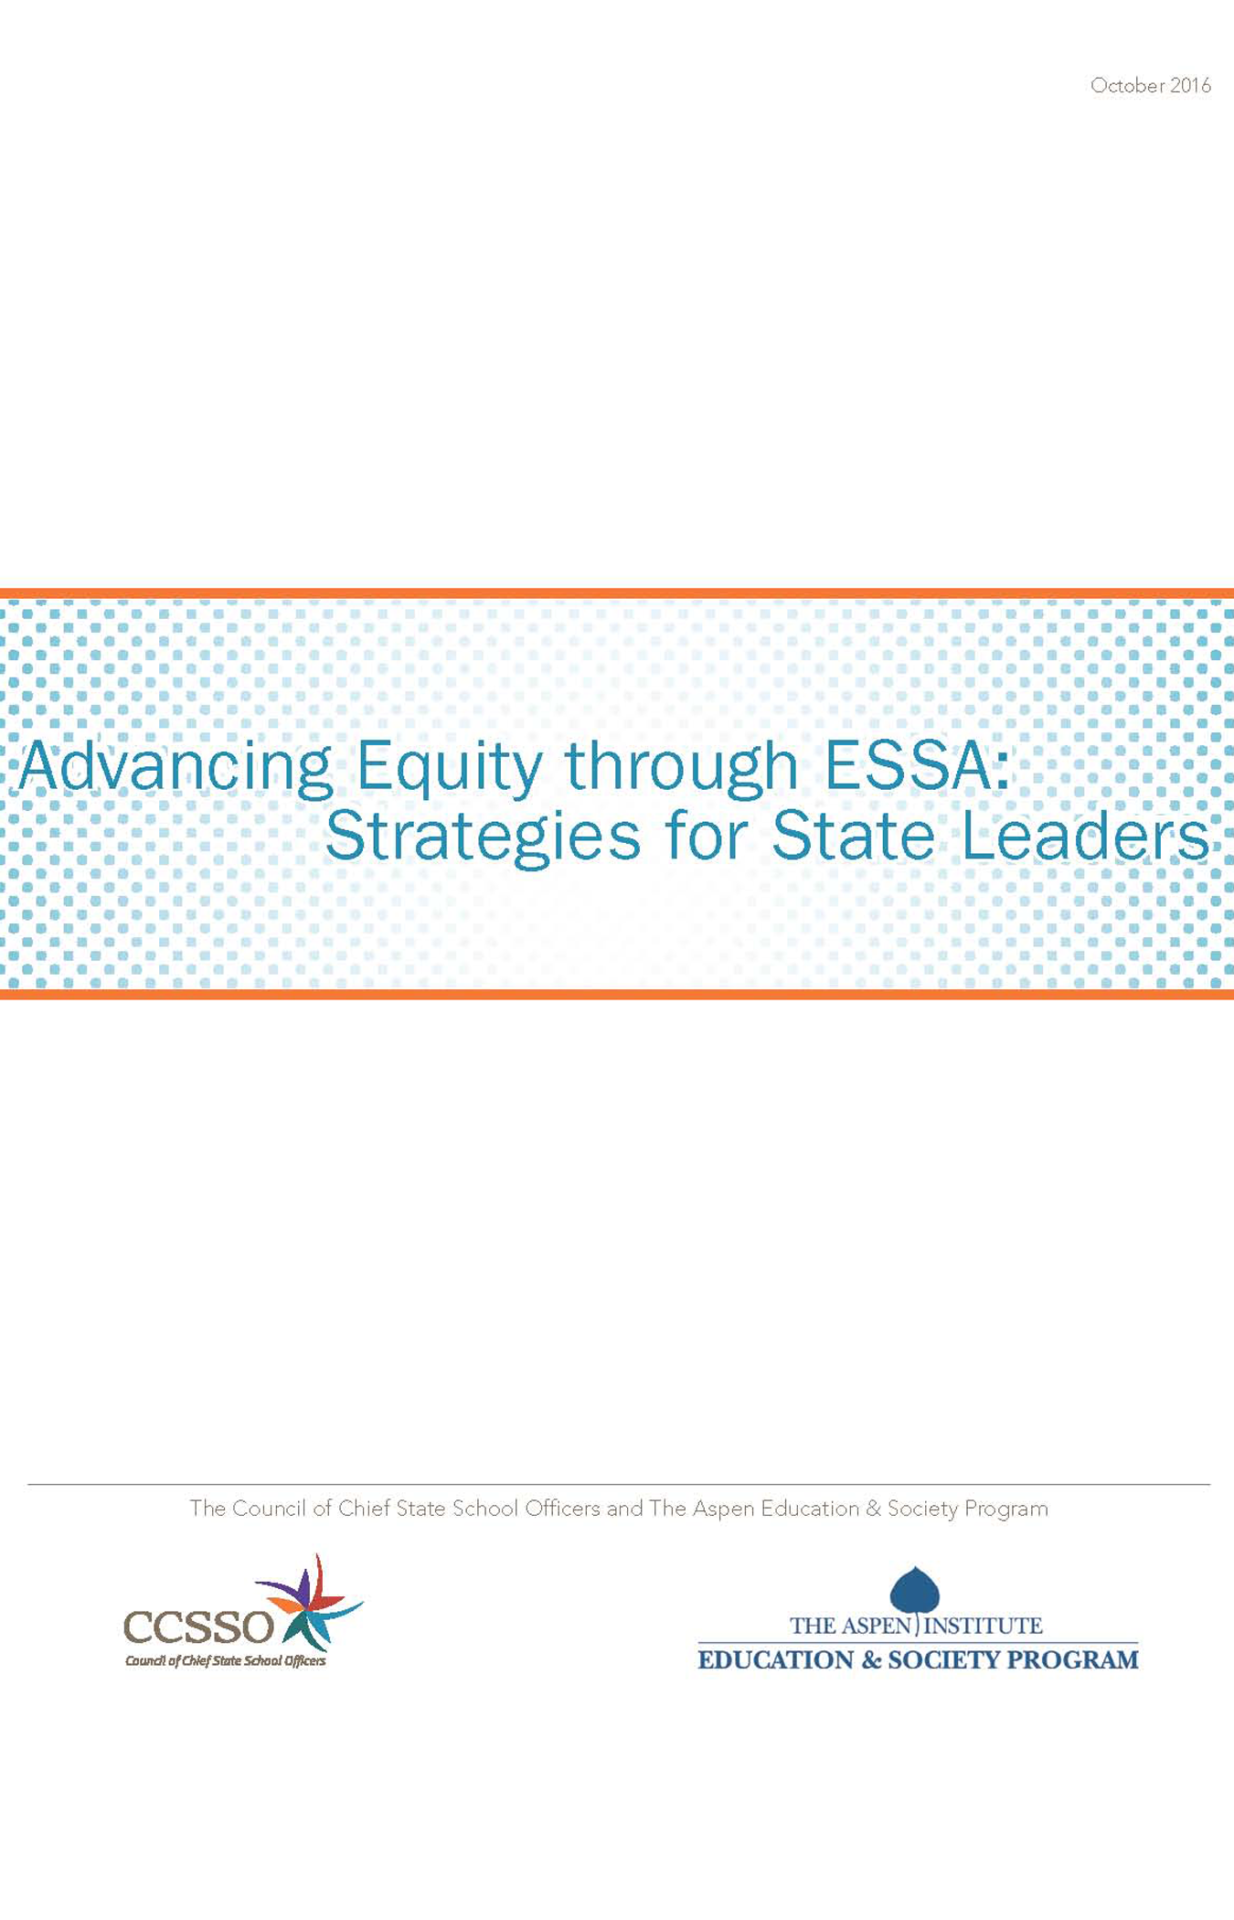 Advancing Equity through ESSA